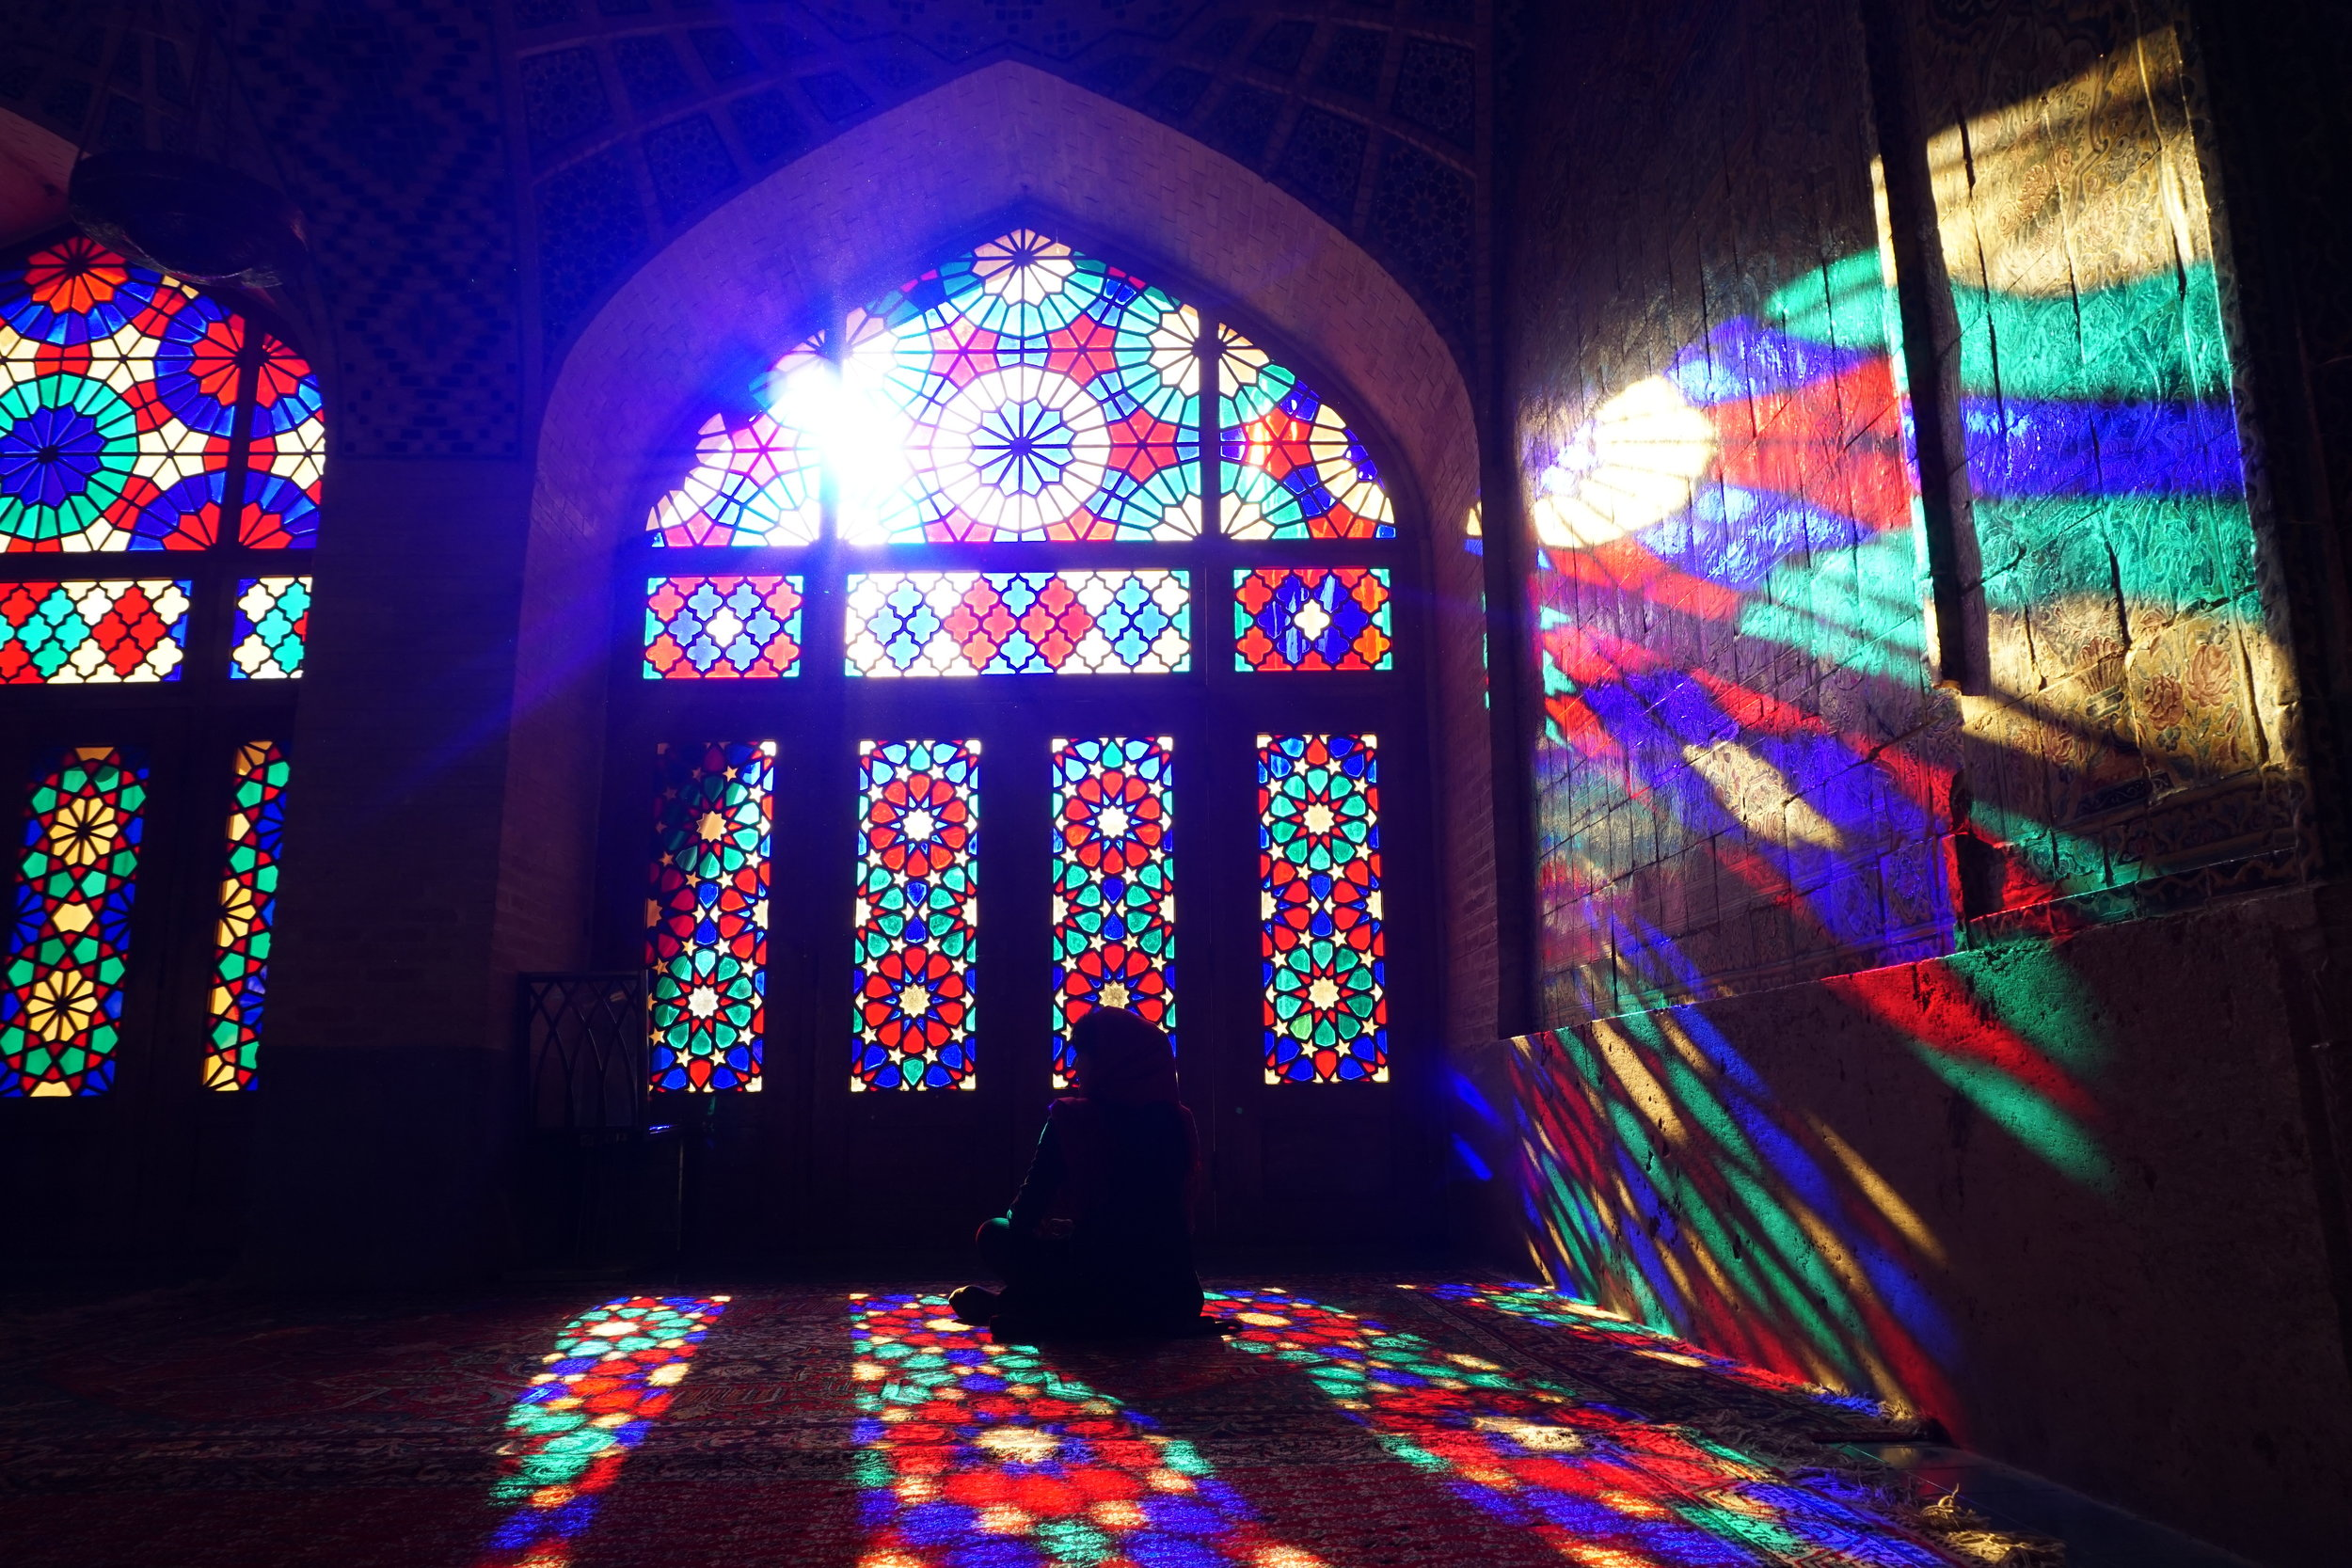 The stunning Nasir Ol Mosque - this is a place where truly light and worship intertwin